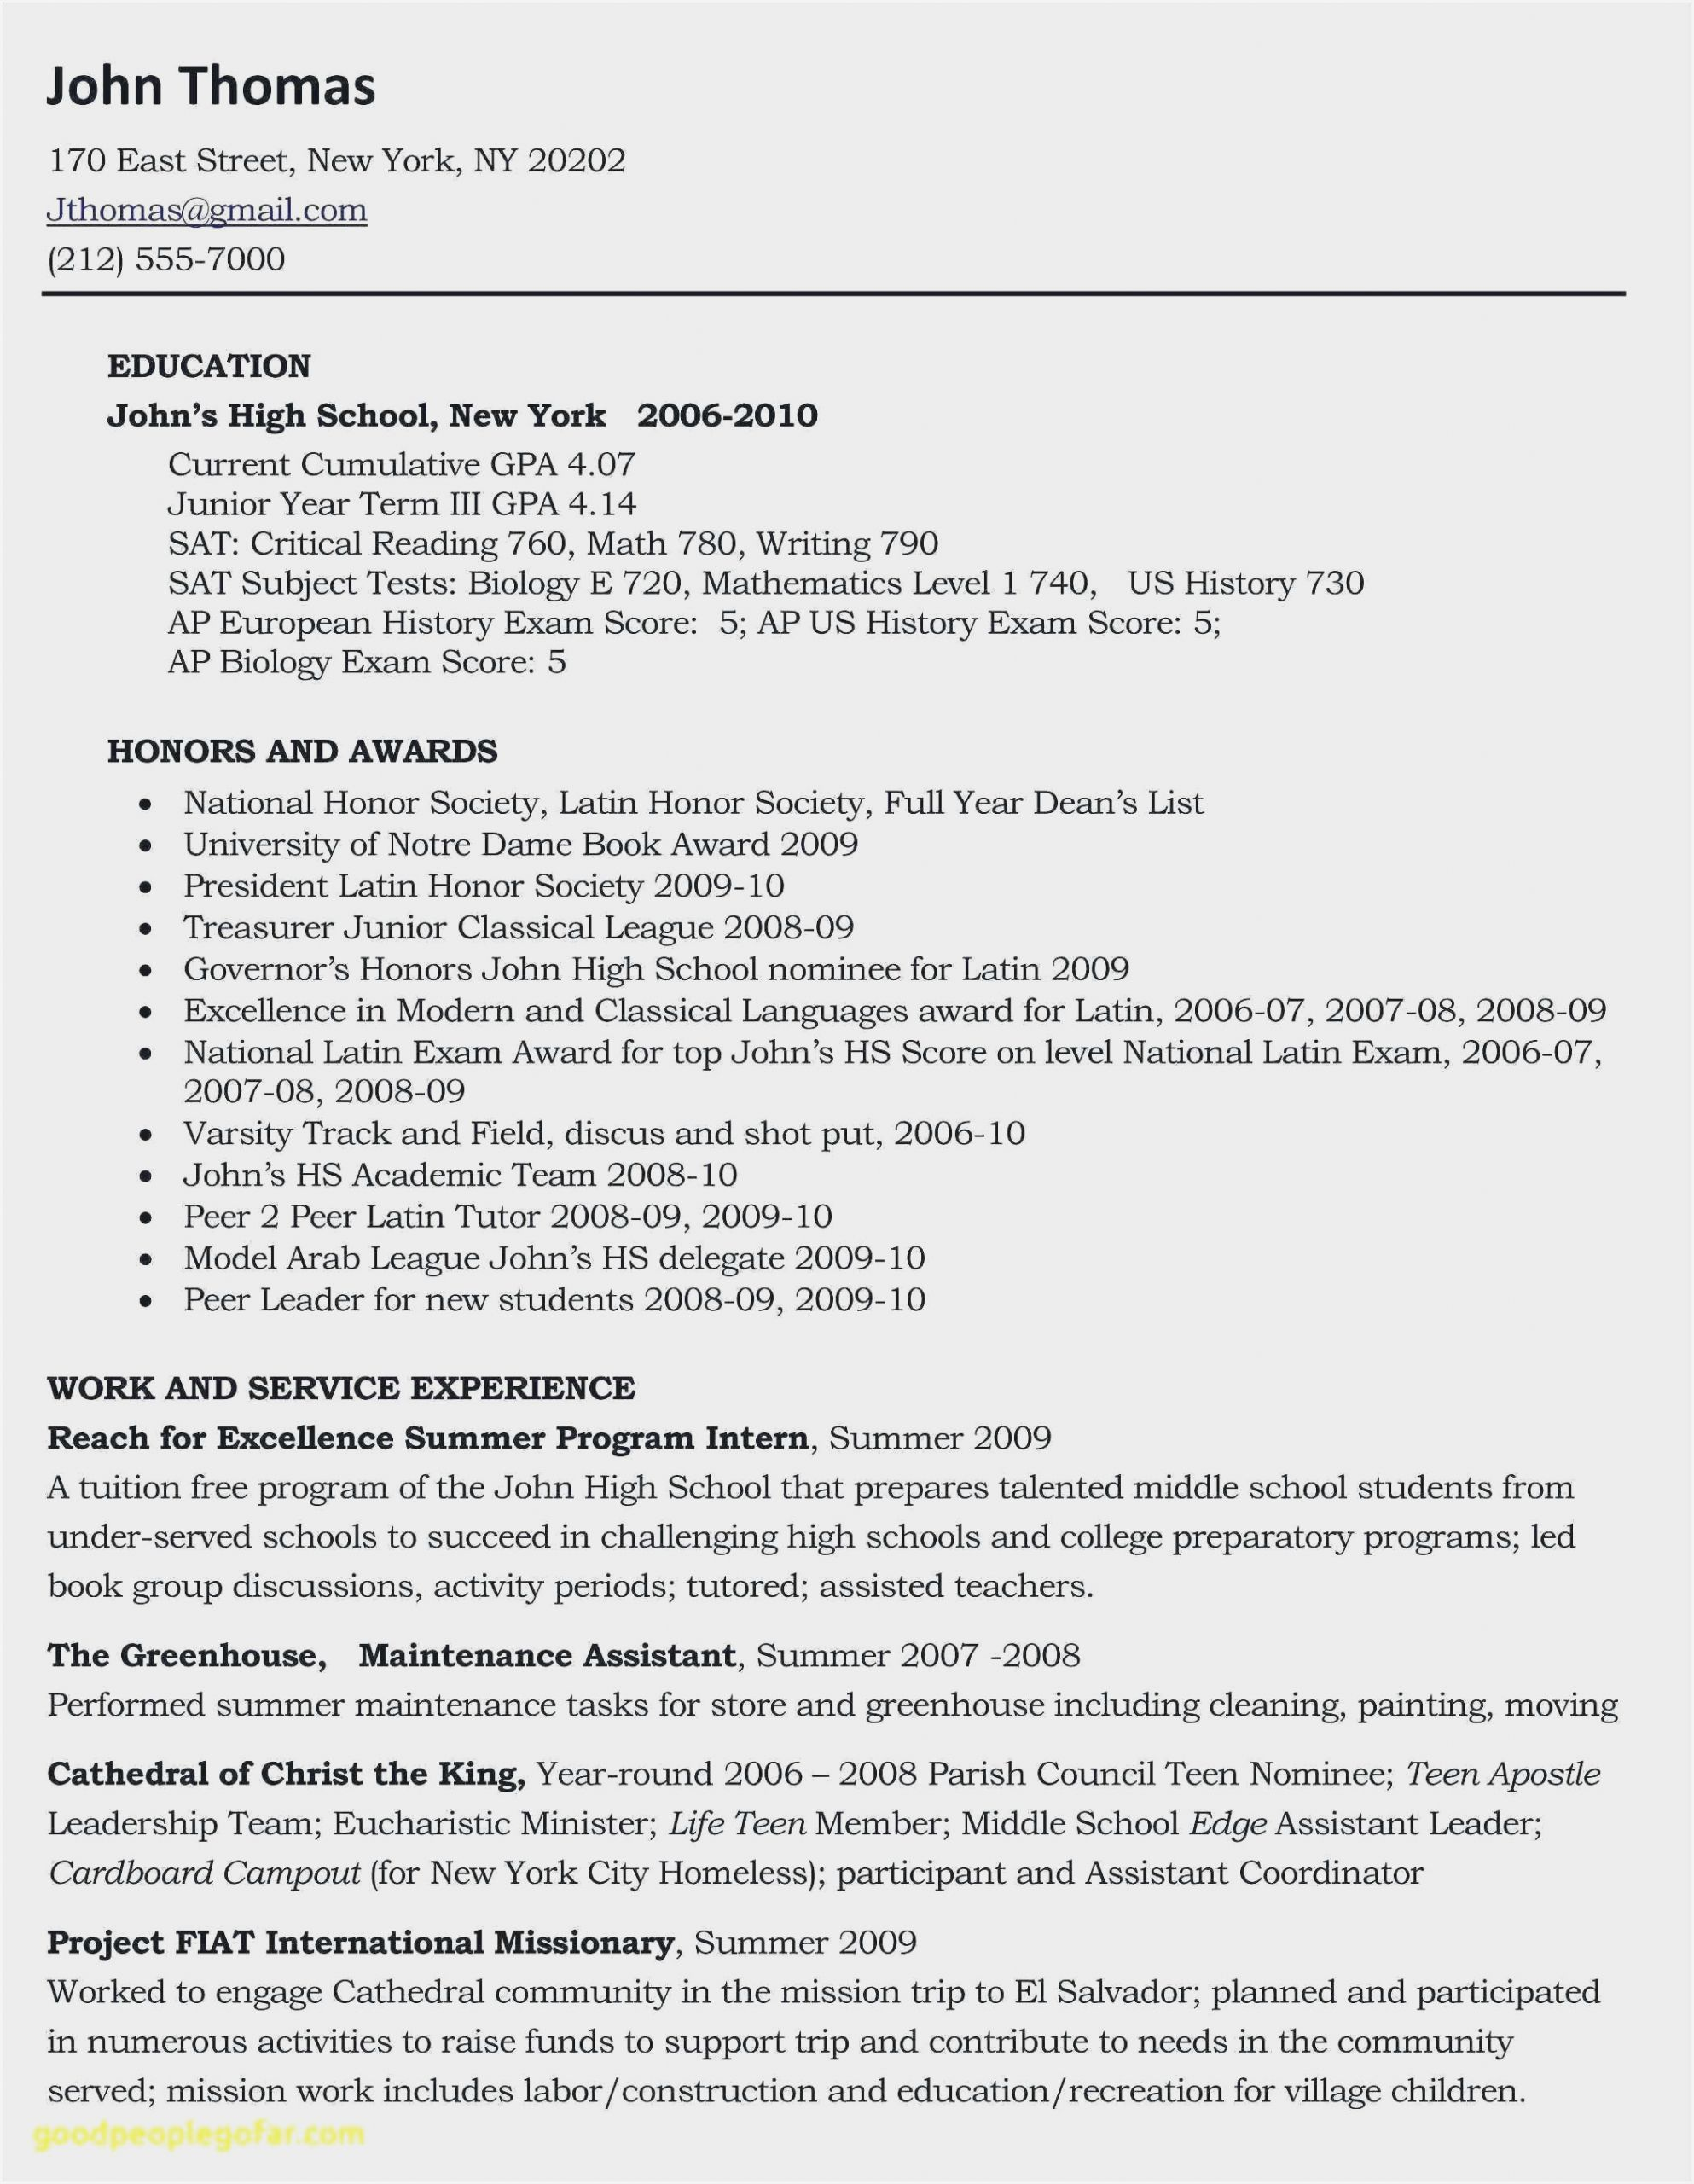 high school resume template for college admissions sample coordinator scaled caretaker Resume Sample High School Resume For College